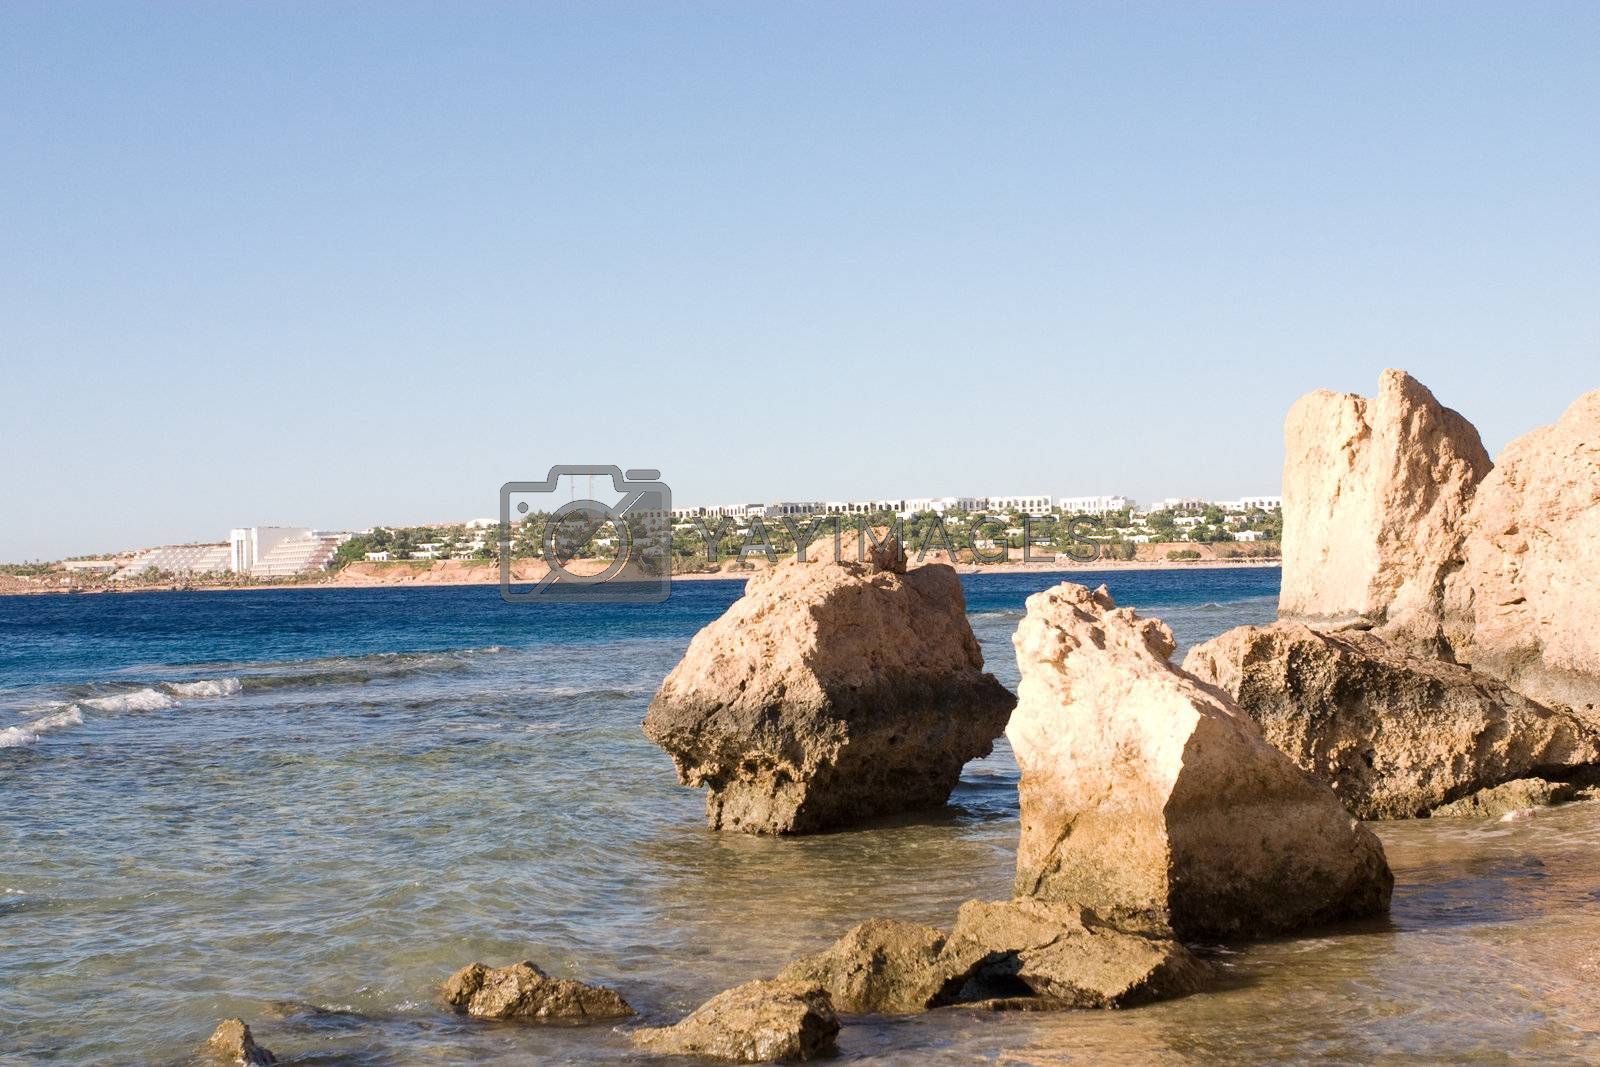 a view to the hotel line of the Red Sea through the rocks and sea